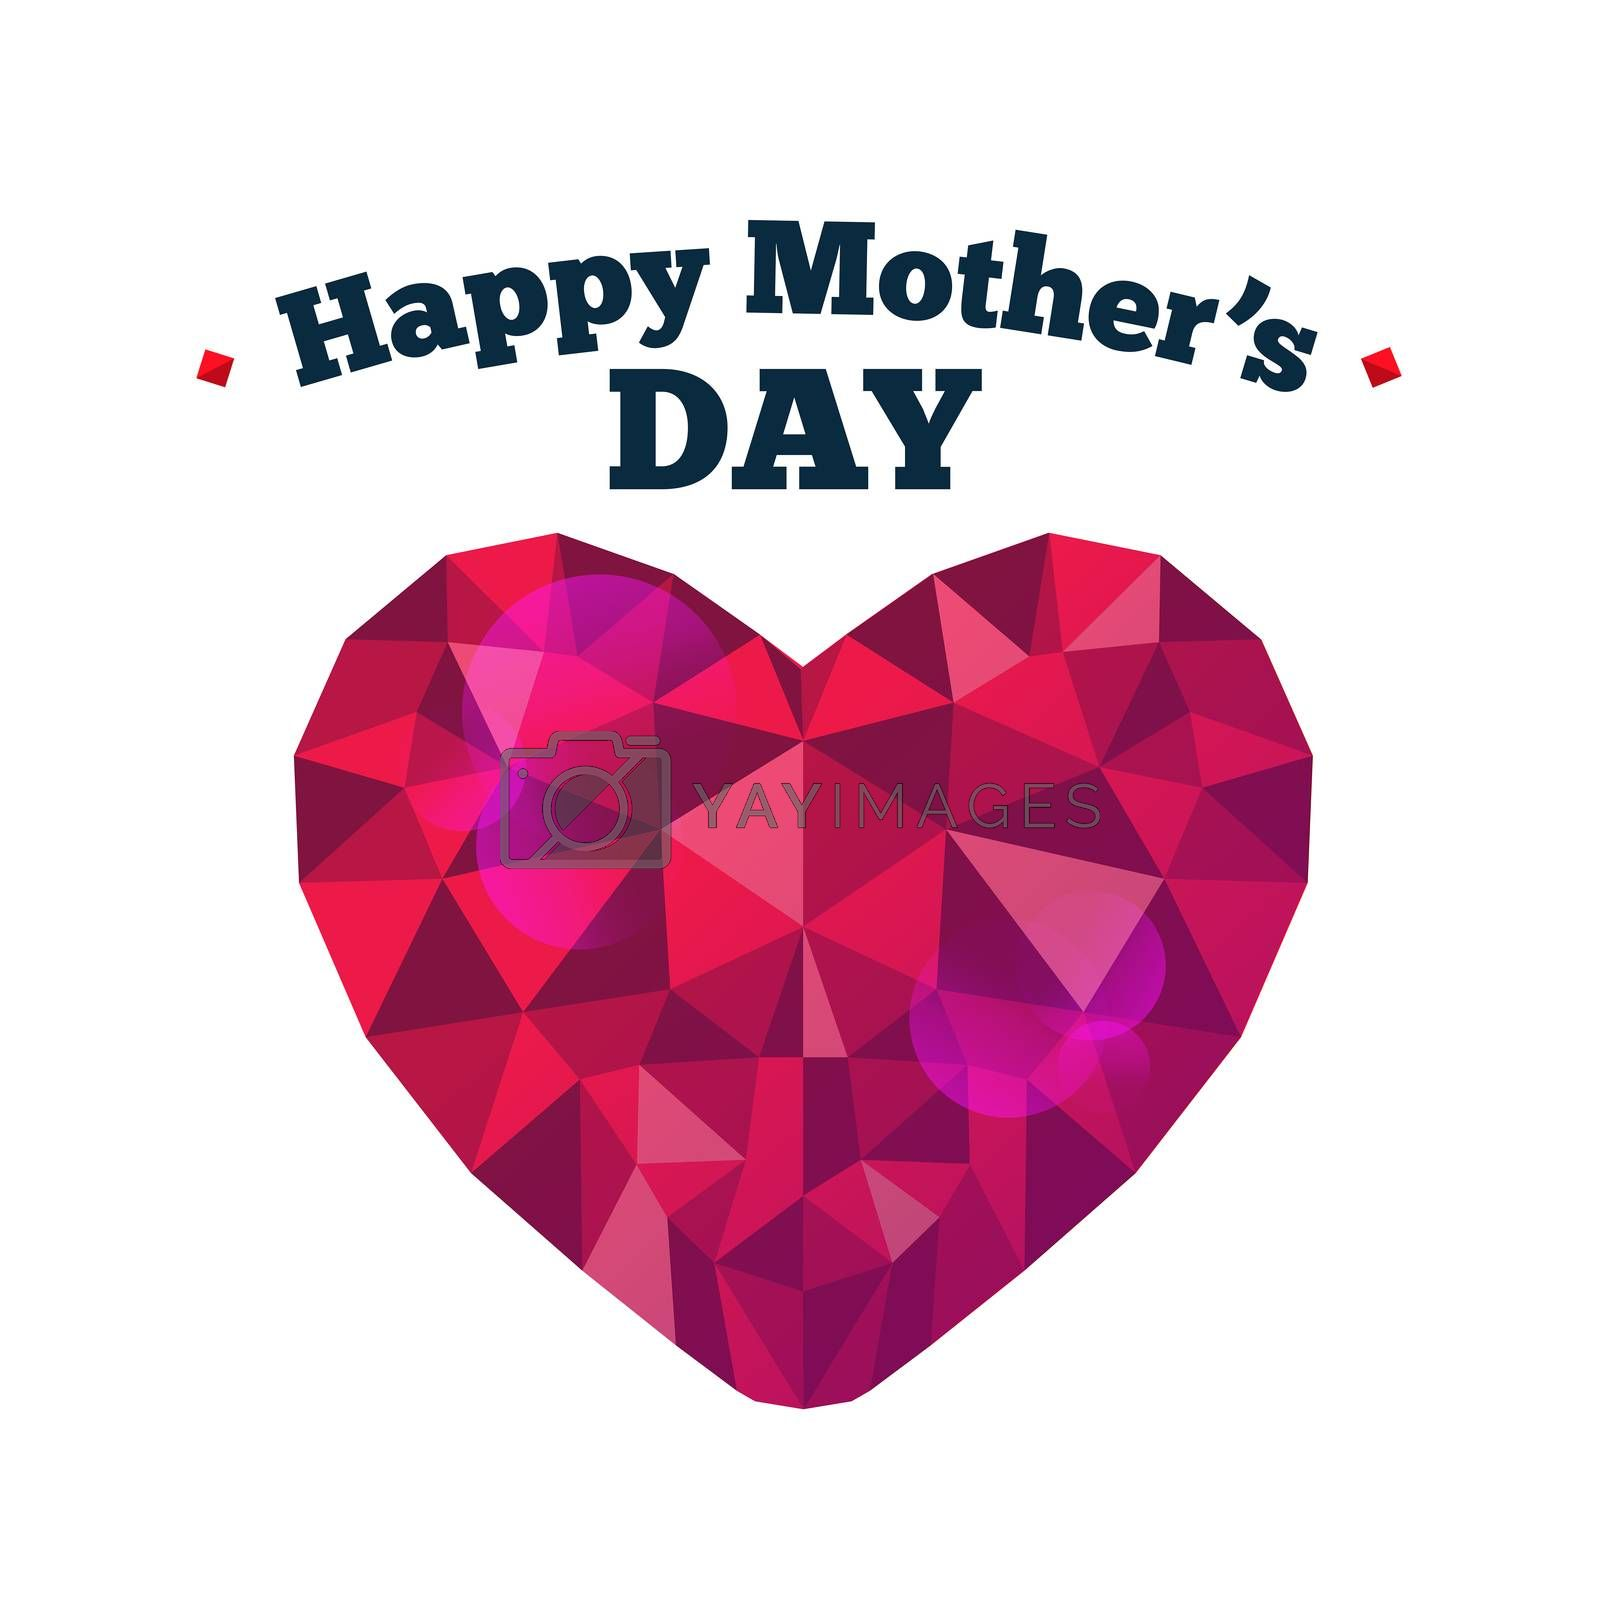 Happy mothers day vector by Wavebreakmedia